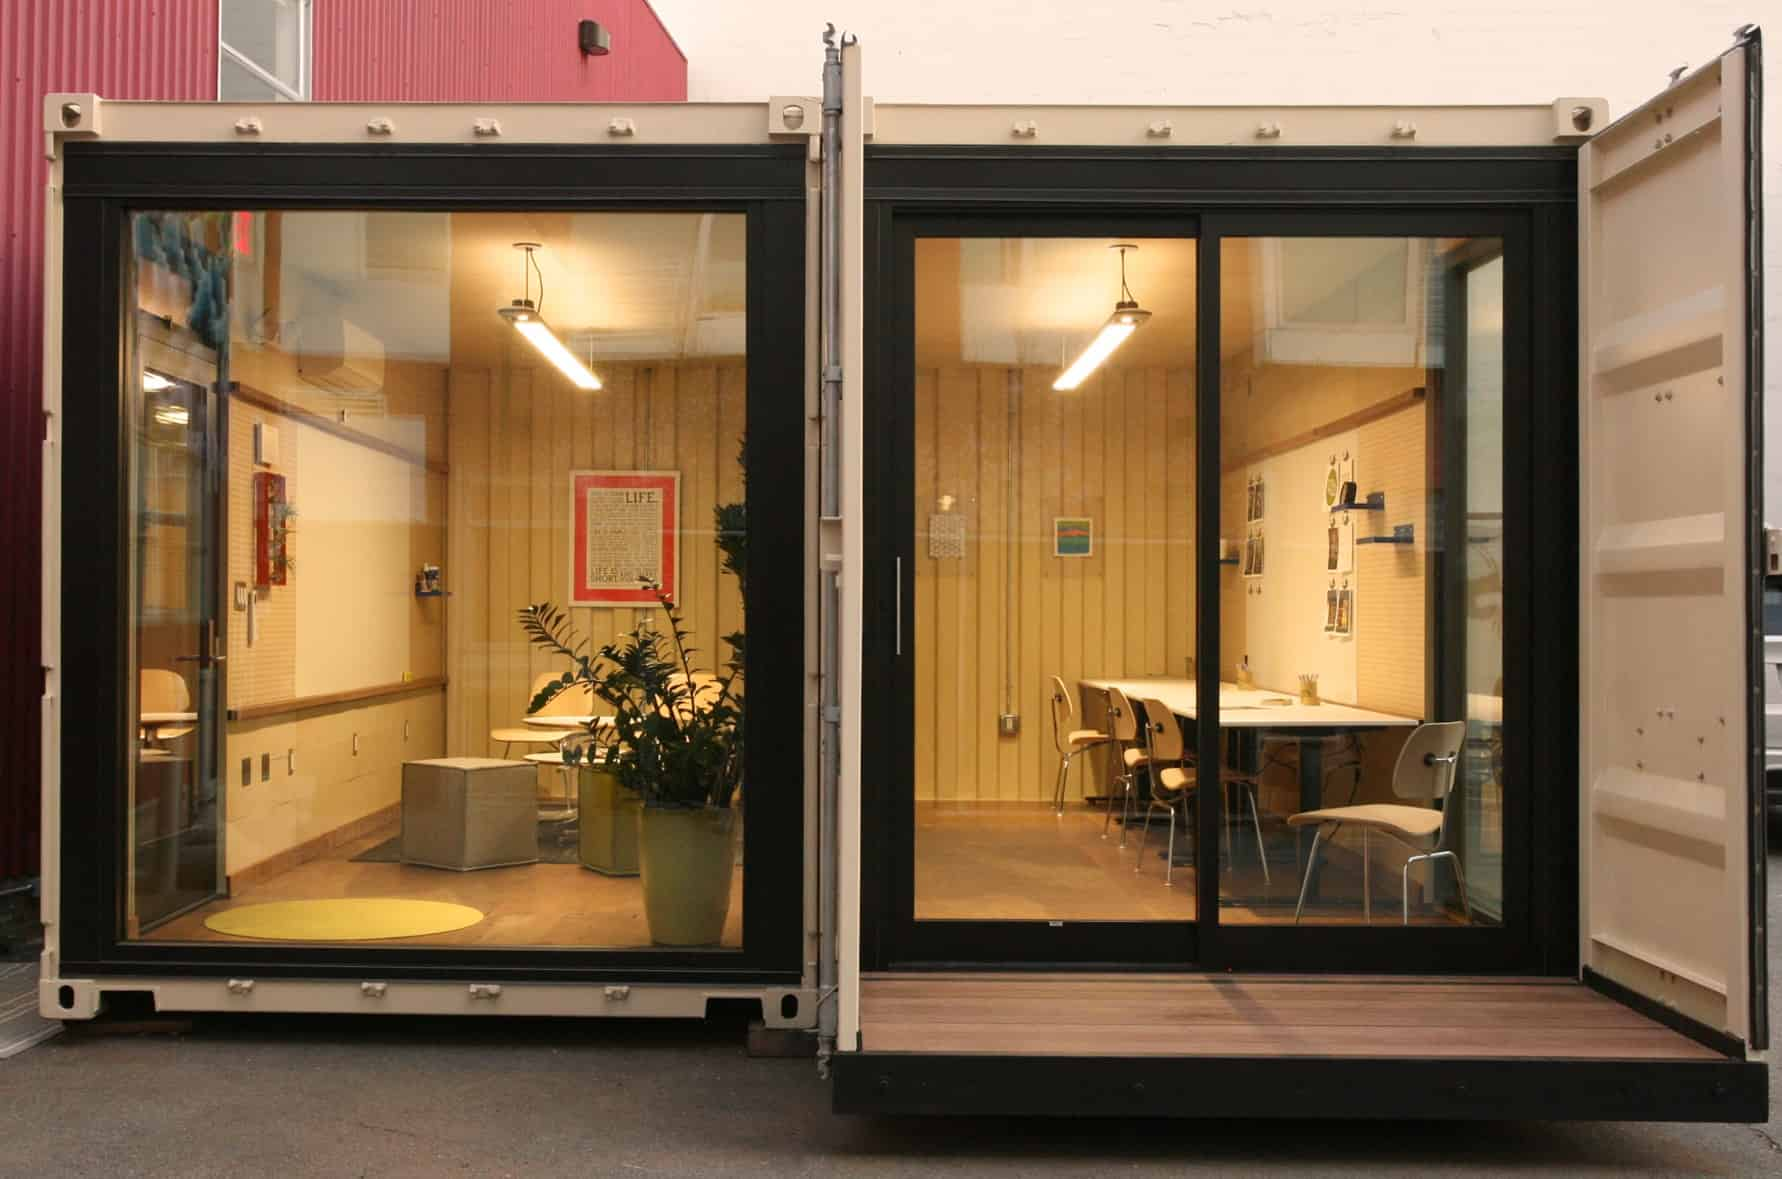 Repurposed cargo container meeting space